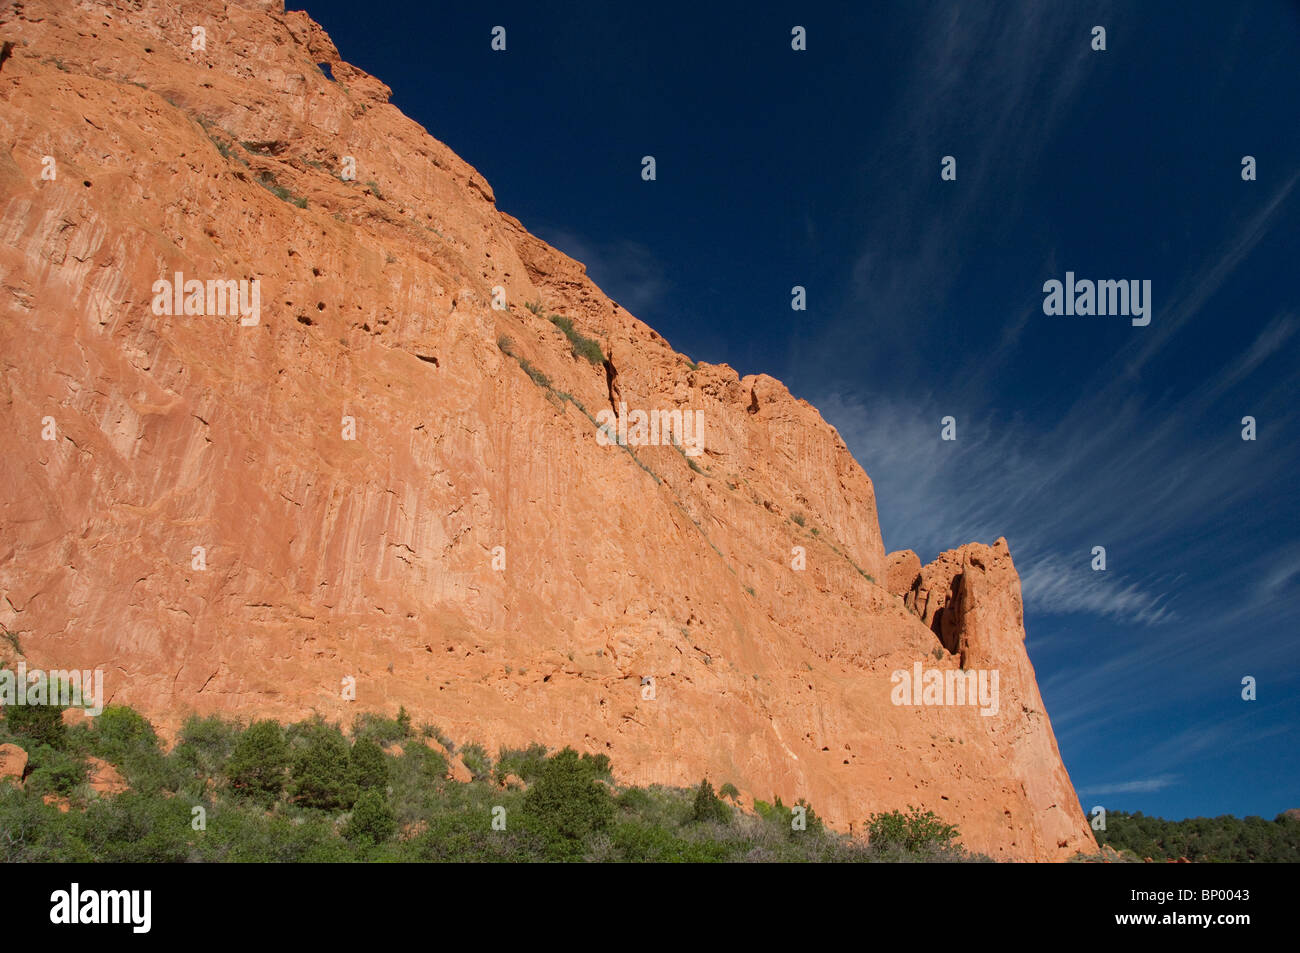 USA, Colorado, Colorado Springs, Garden of the Gods Natural Monument & park. Geological site with red sandstone - Stock Image